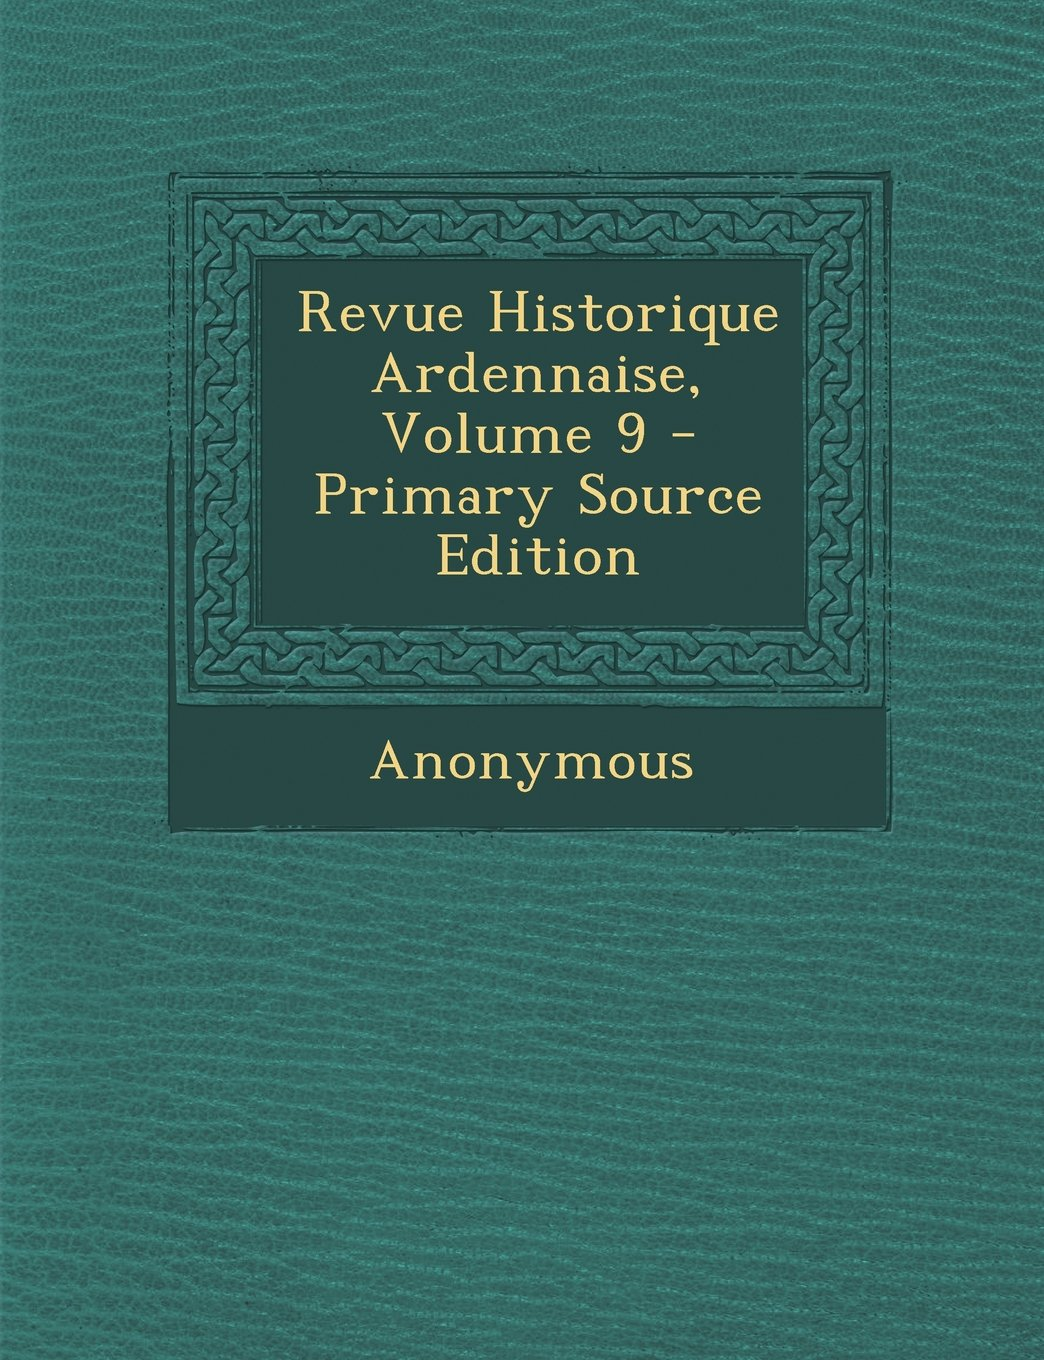 Download Revue Historique Ardennaise, Volume 9 - Primary Source Edition (French Edition) pdf epub